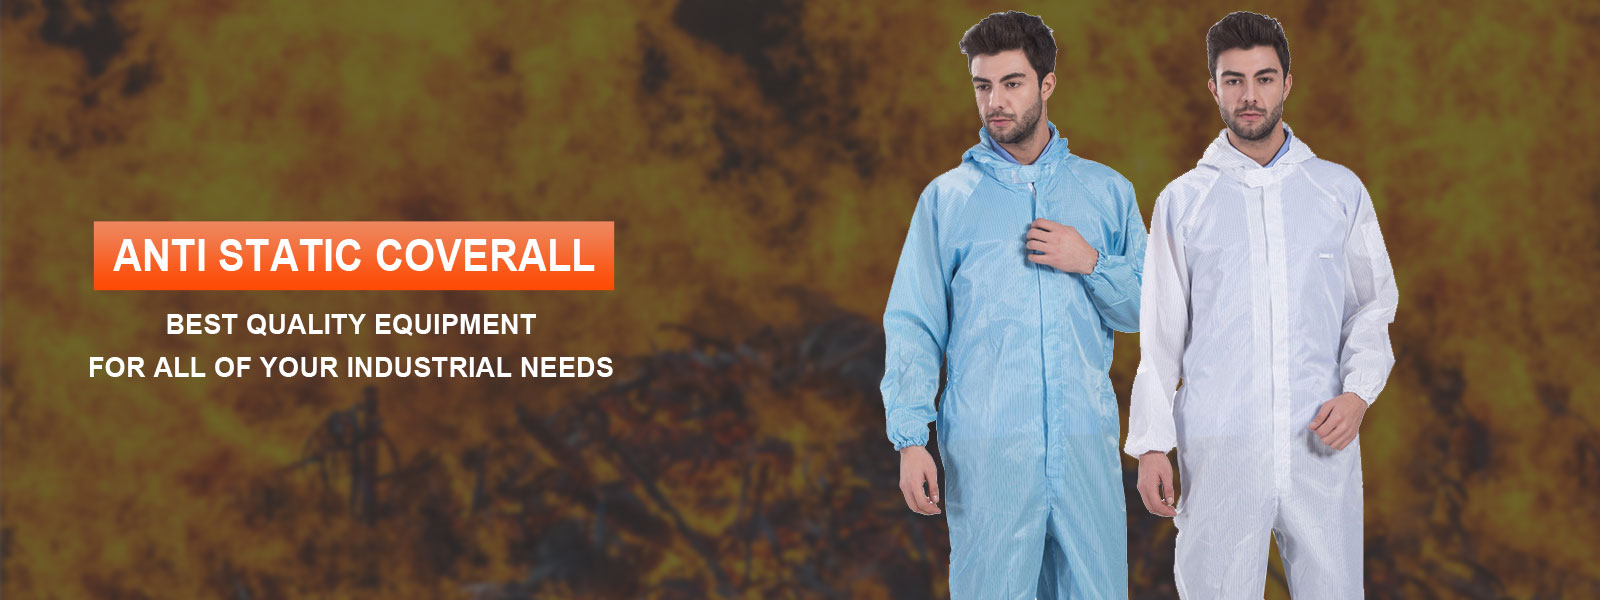 Anti Static Coverall Manufacturers in Gujarat